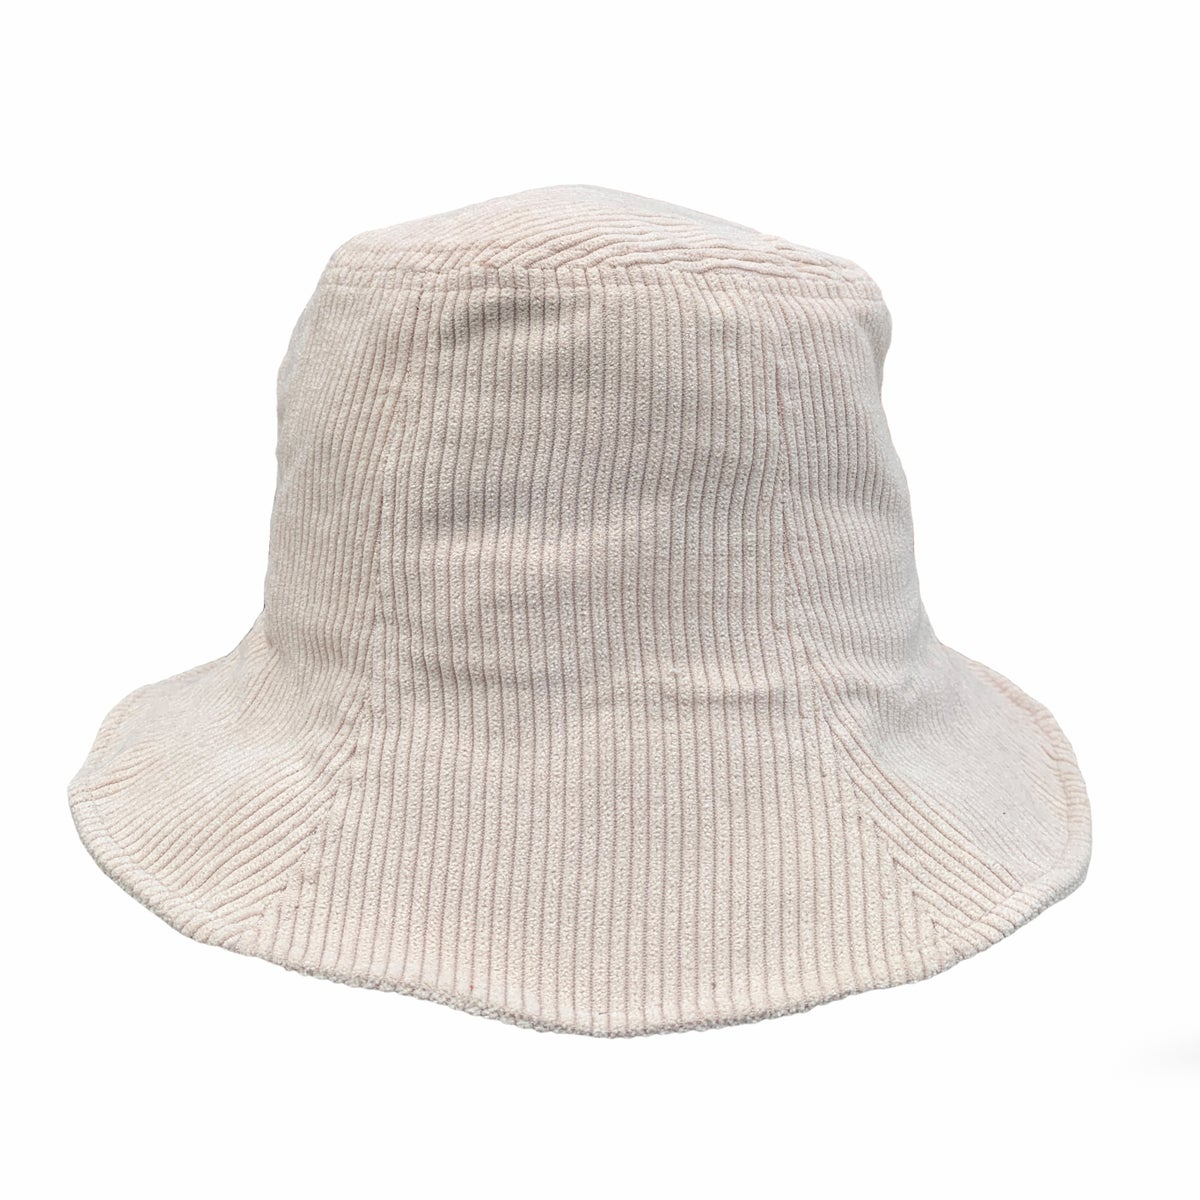 Image of Corduroy Bucket Hat.  Beige.